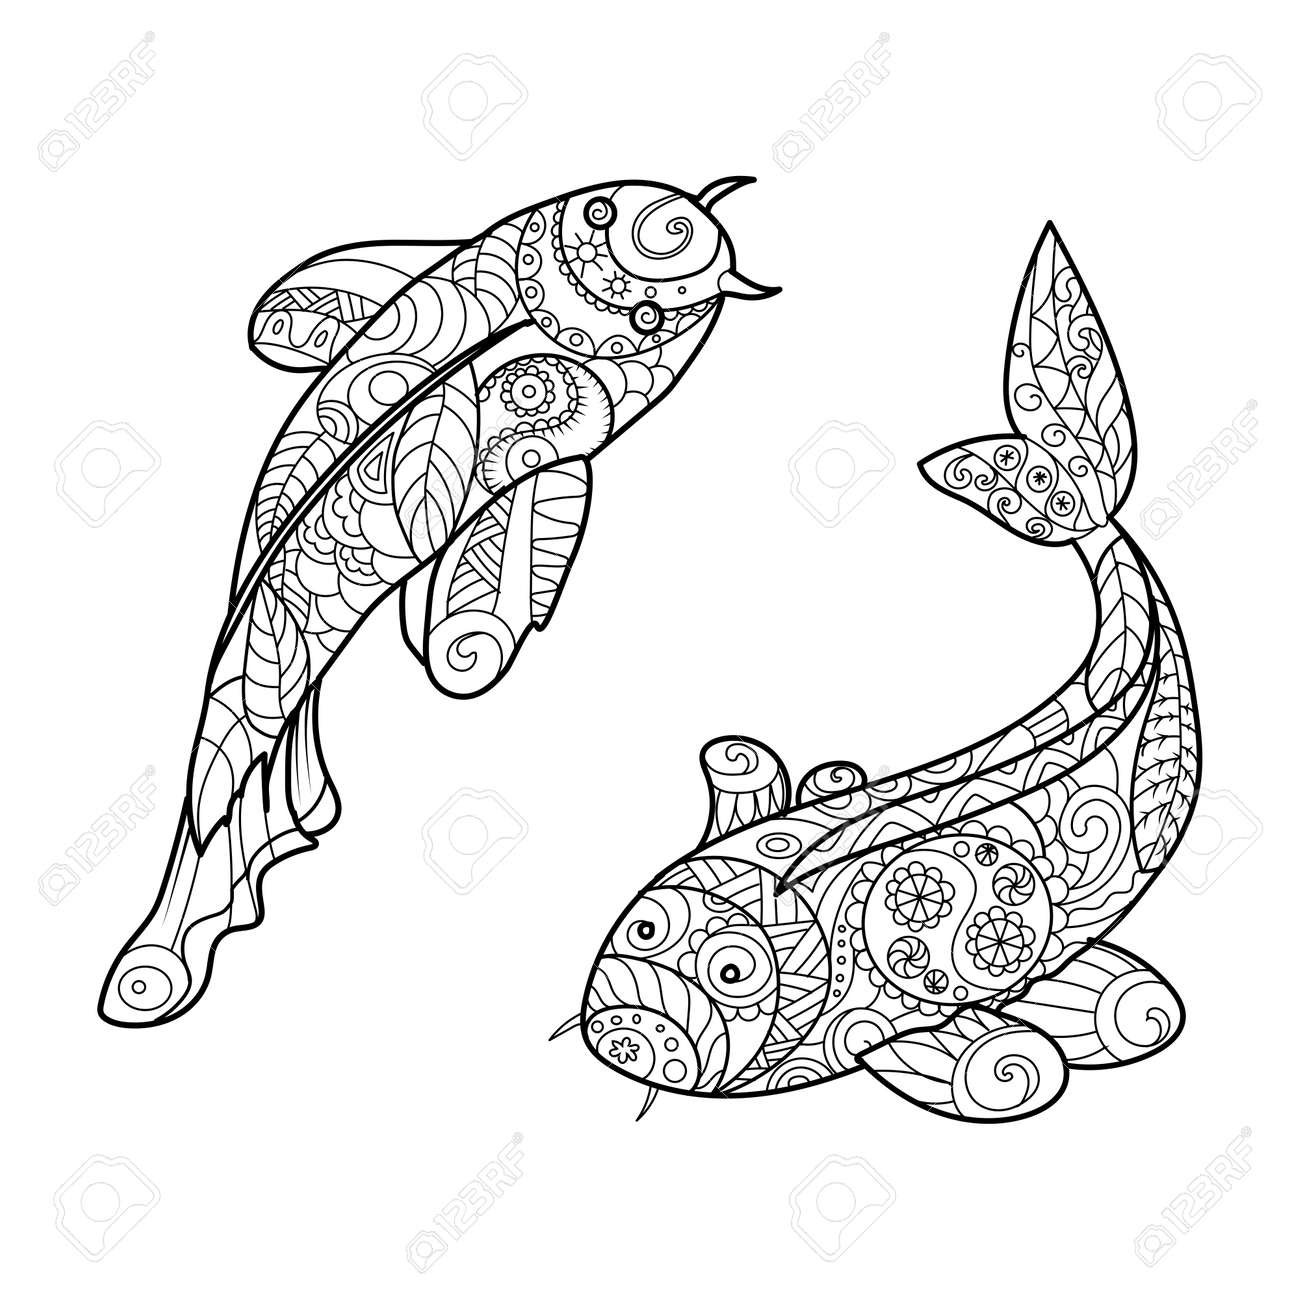 Koi Carp Fish Coloring Book For Adults Vector Illustration Stock